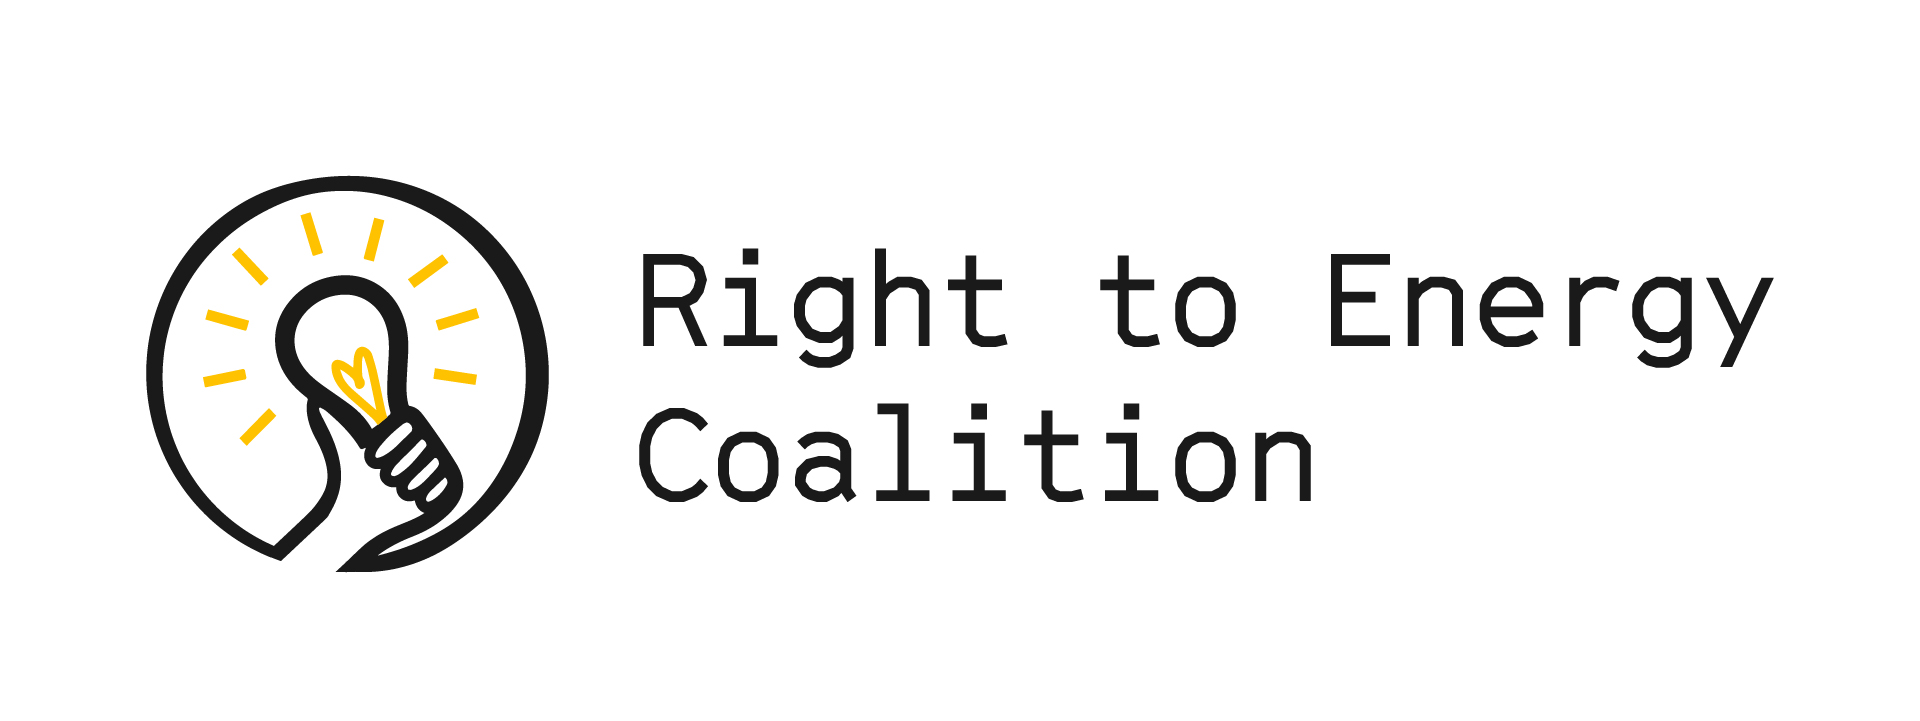 Right to Energy Coalition